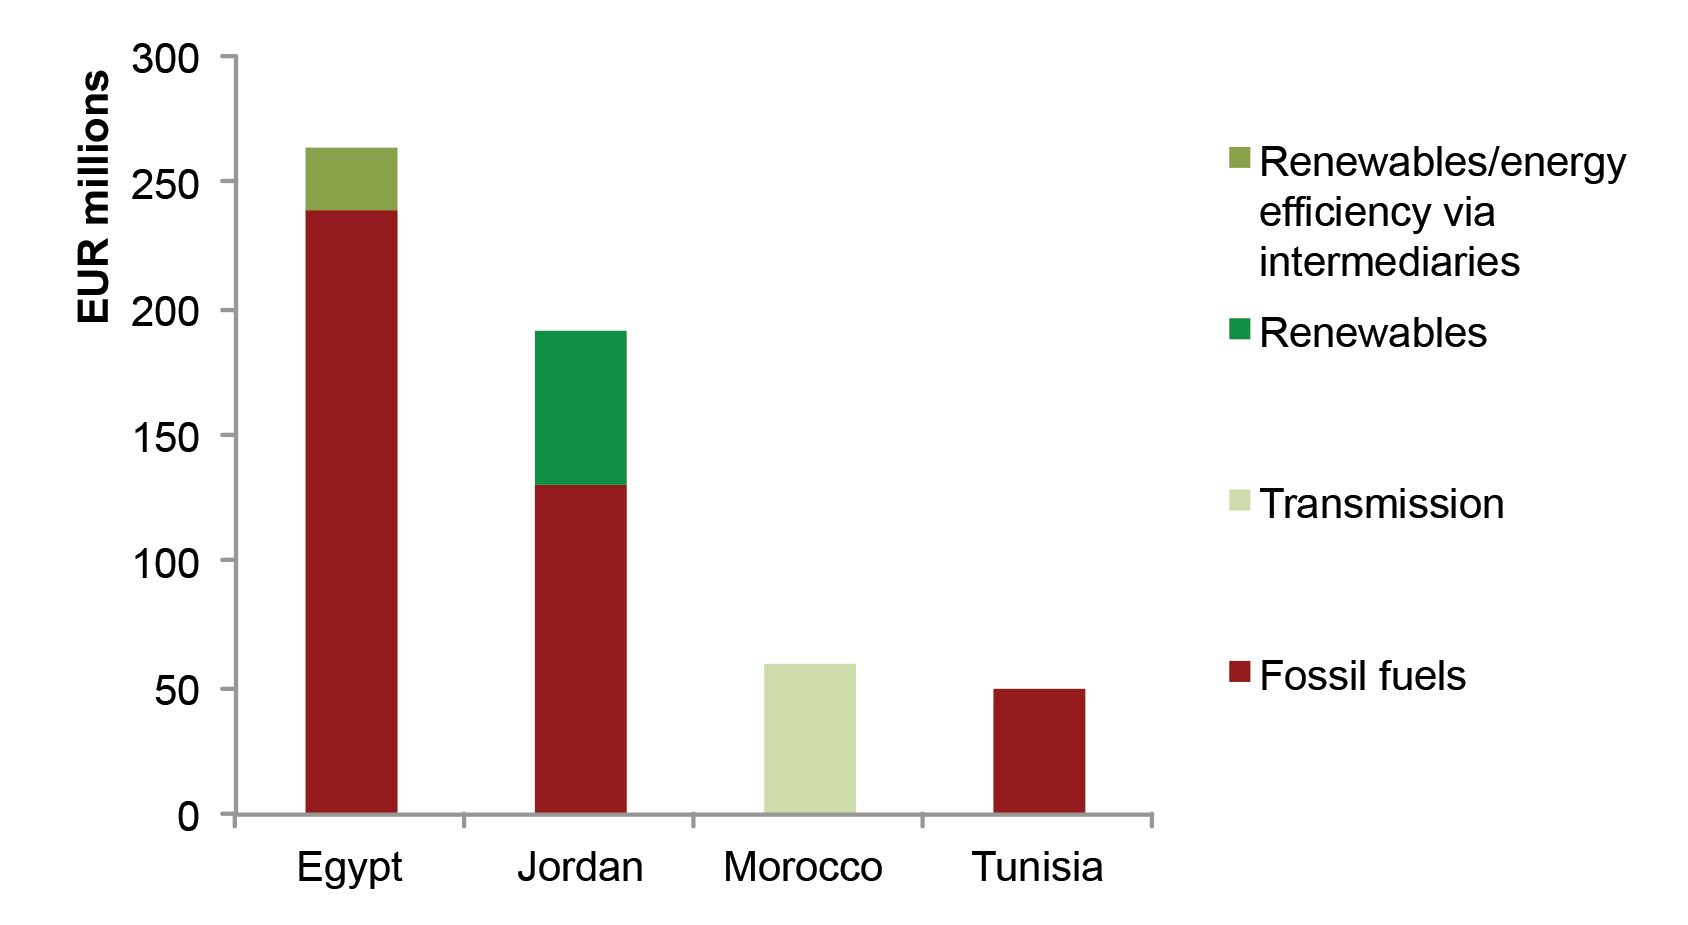 EBRD financing of energy projects by type, 2012-2014